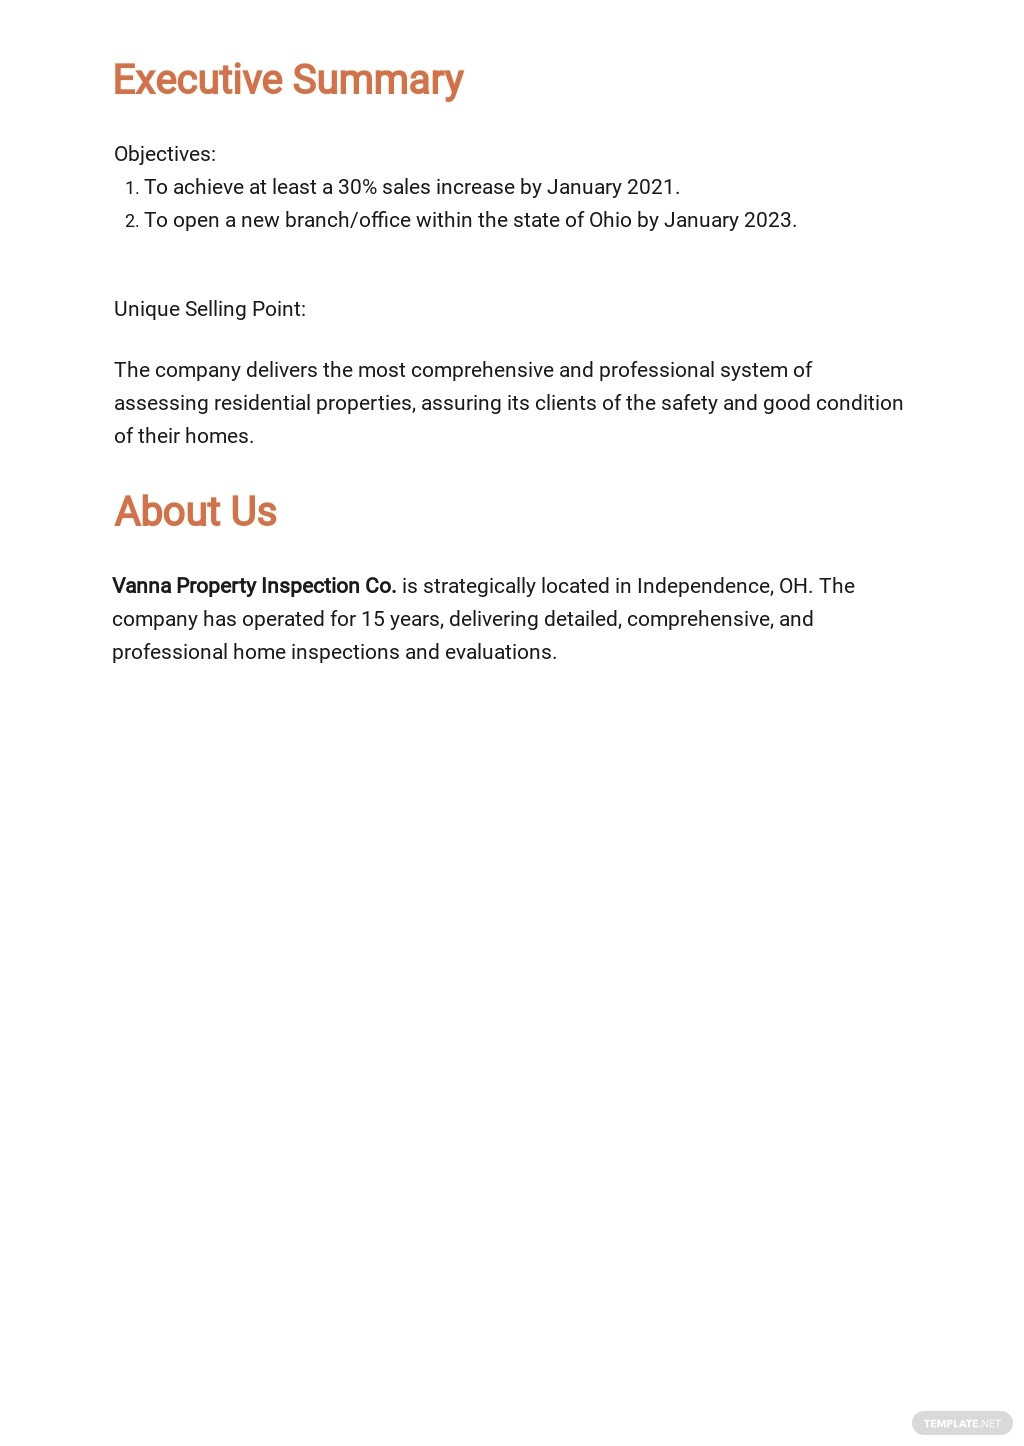 Business Property Inspection Business Plan Template 1.jpe